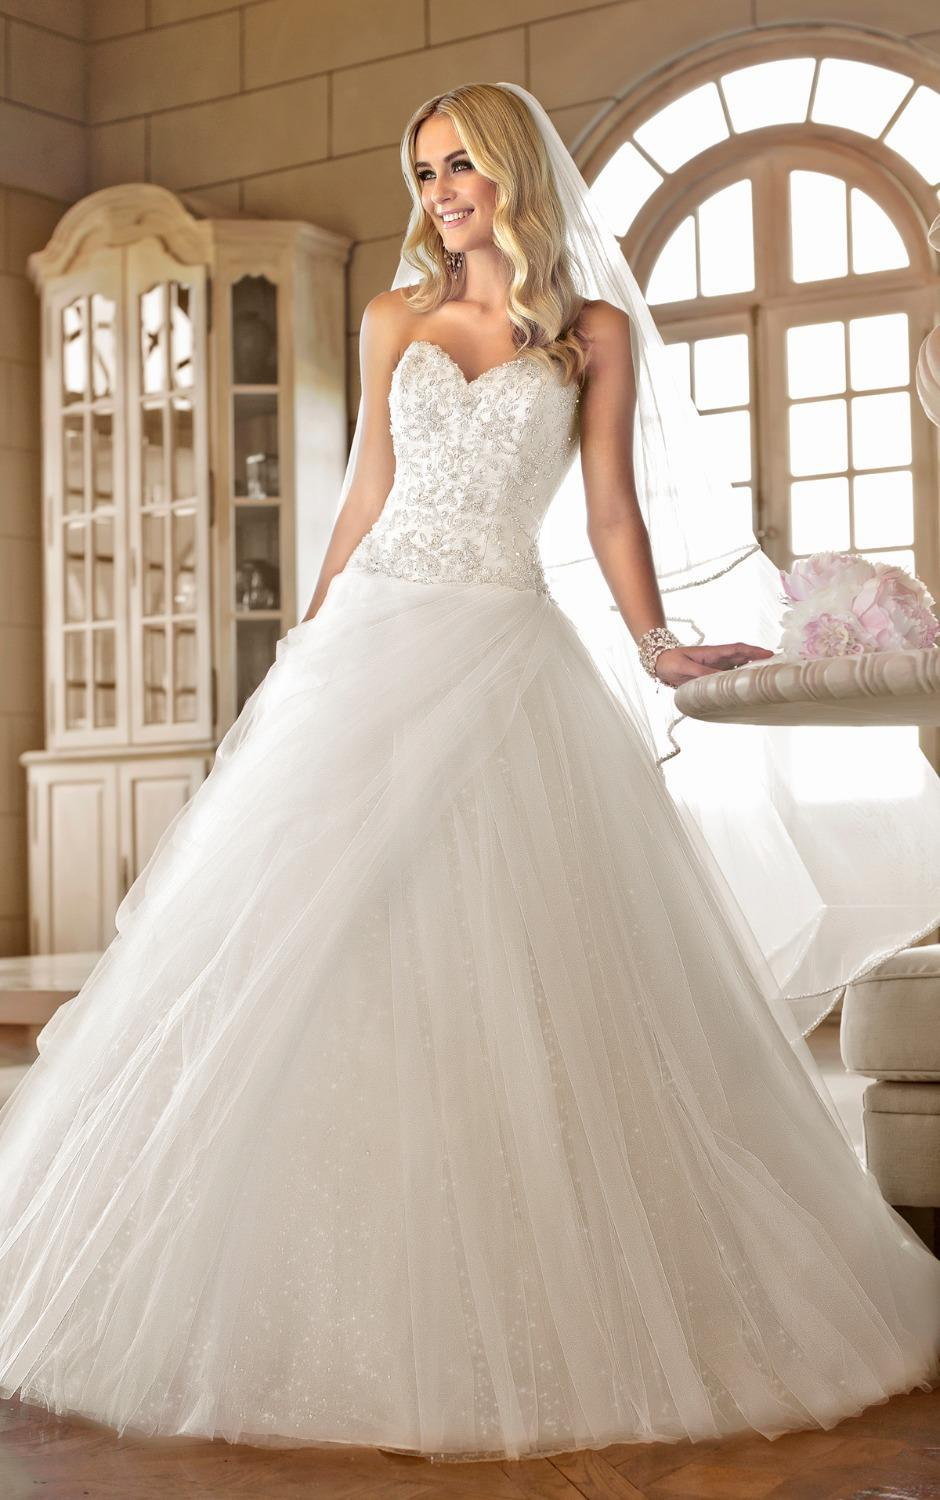 Ball Gown Wedding Dress Elaborately Diamante Beading Sweetheart Neckline Bodice Drop Waist Tulle Skirt Bridal Court Train In Dresses From